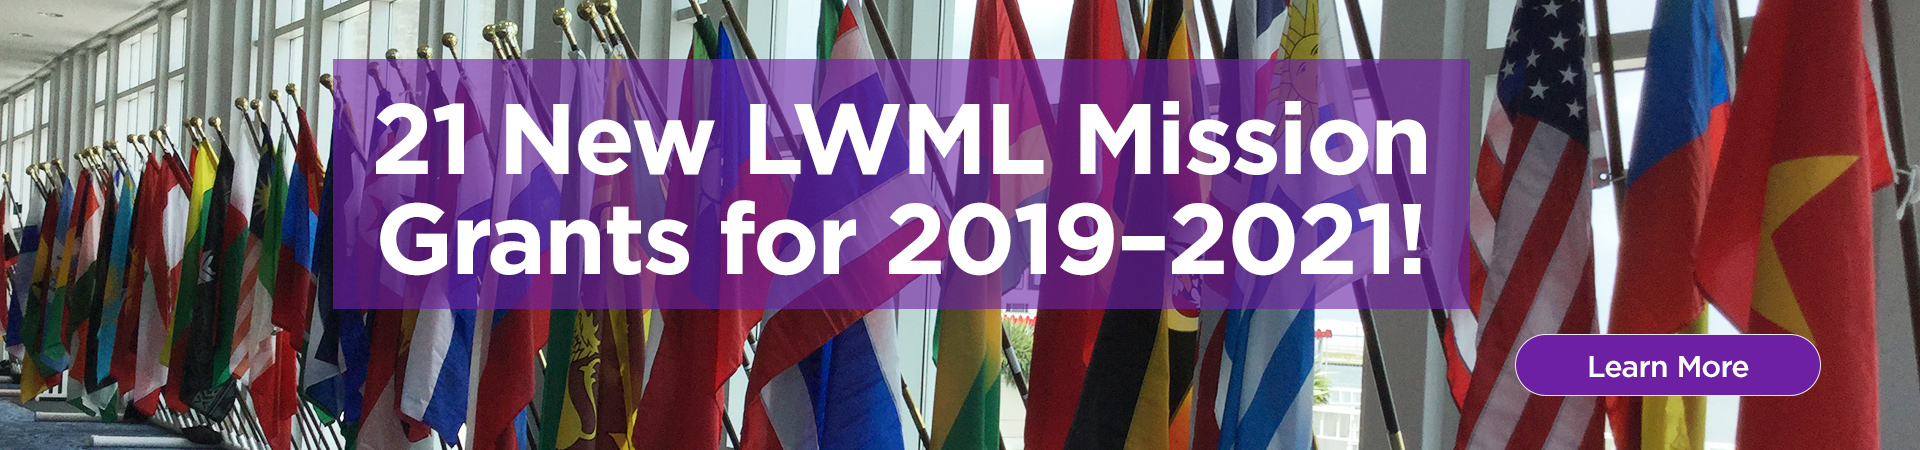 21 New LWML Mission Grants for 2019-2021!